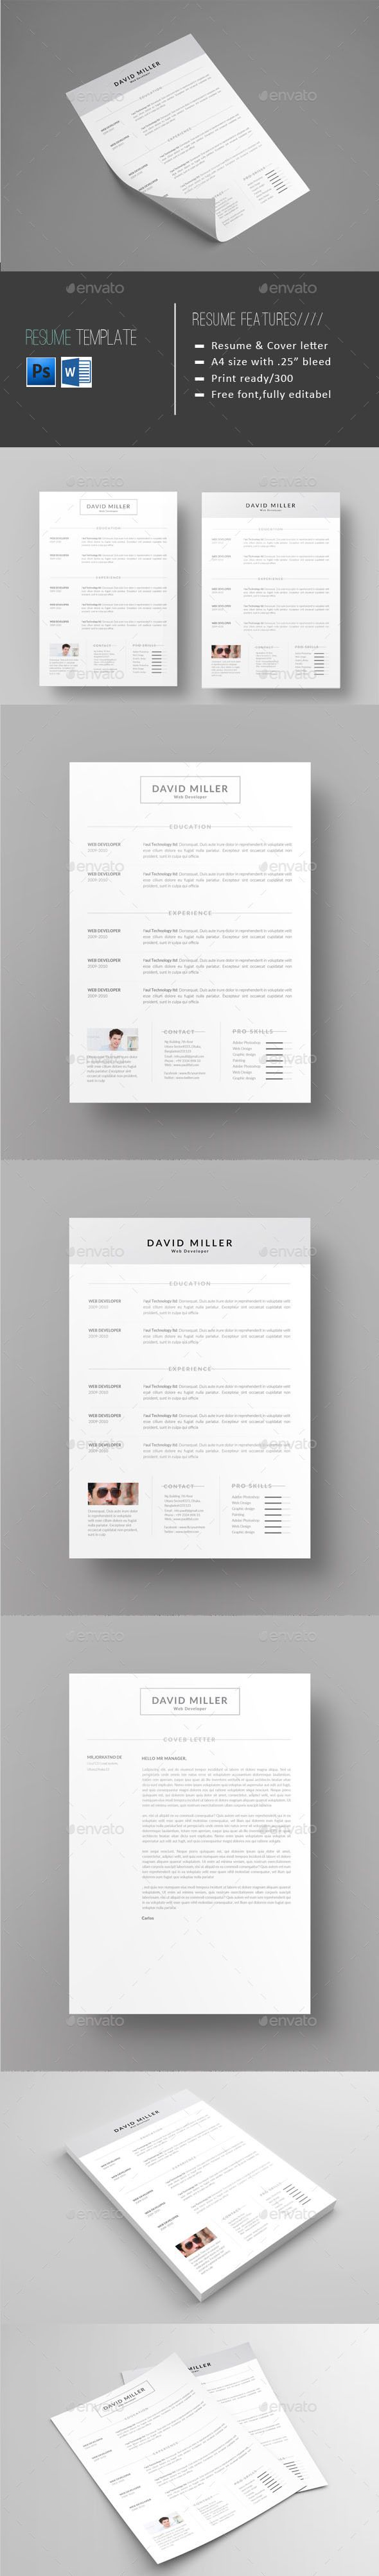 format resume writing%0A Resume Design Template  Resumes Stationery Template PSD  Download here   https